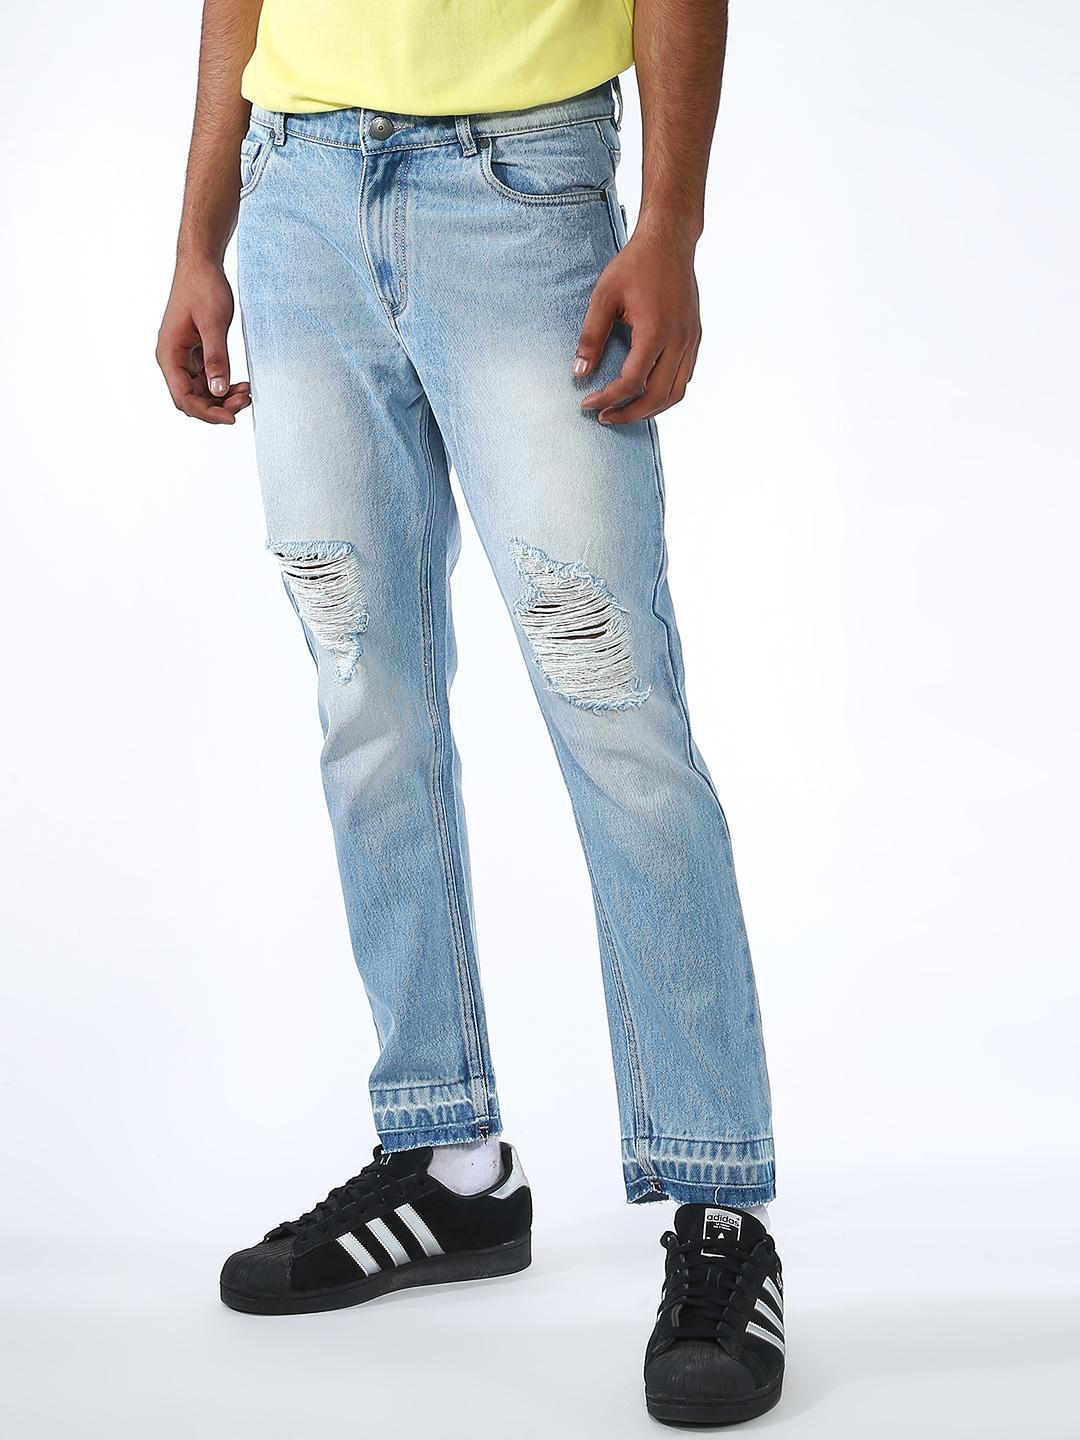 REALM Blue Light Wash Distressed Jeans 1